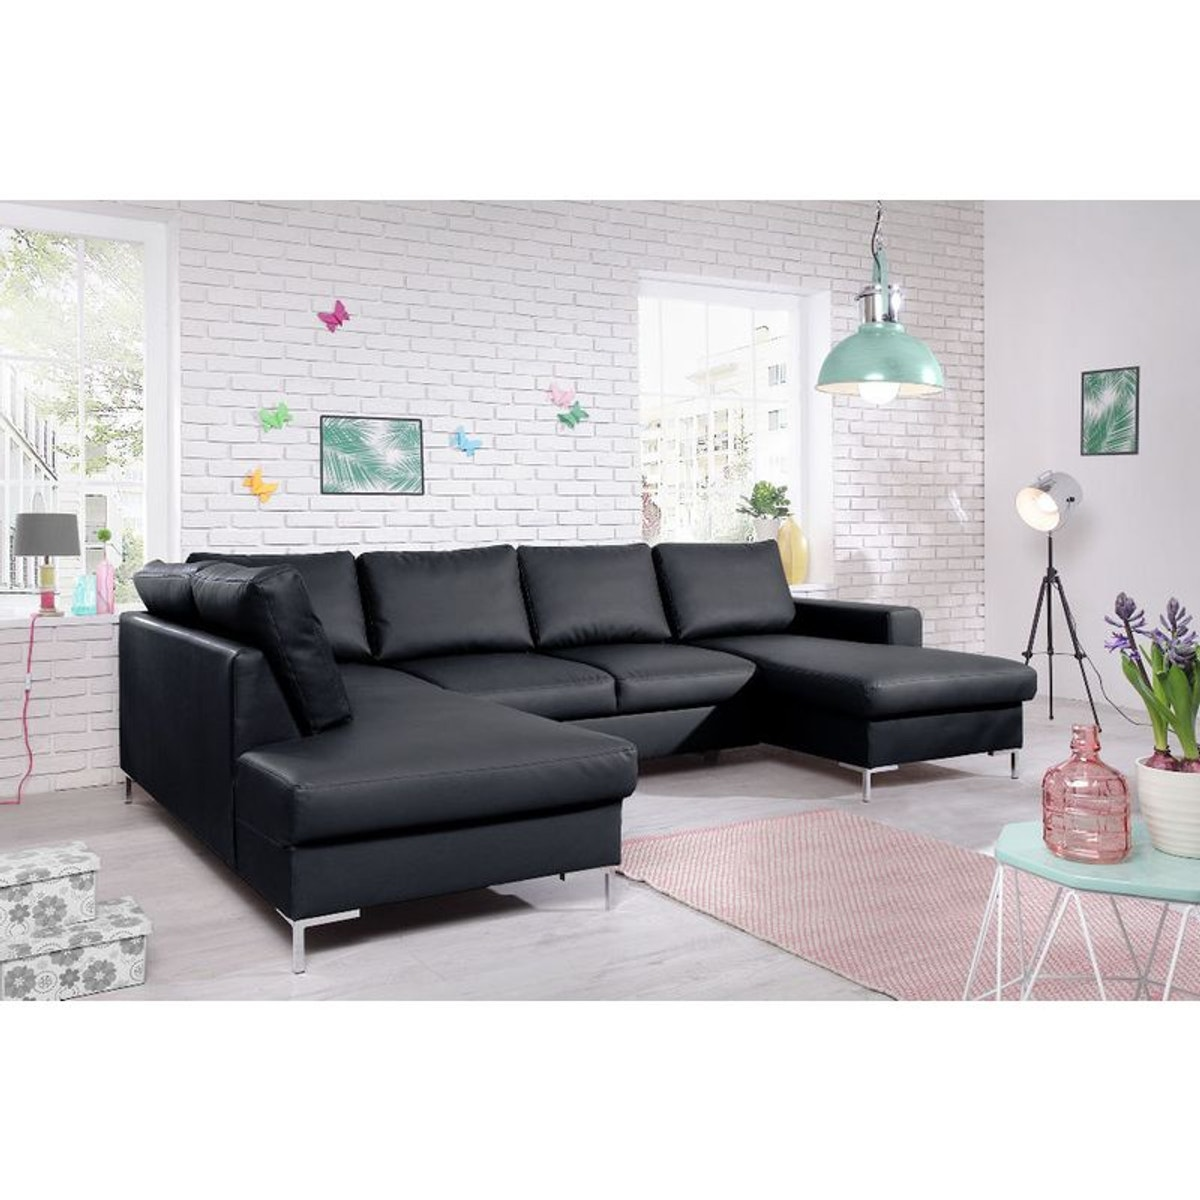 Canape D Angle Panoramique Lilly Taille 8 Places Canape Angle Canape Panoramique Convertible Et Canape Bobochic